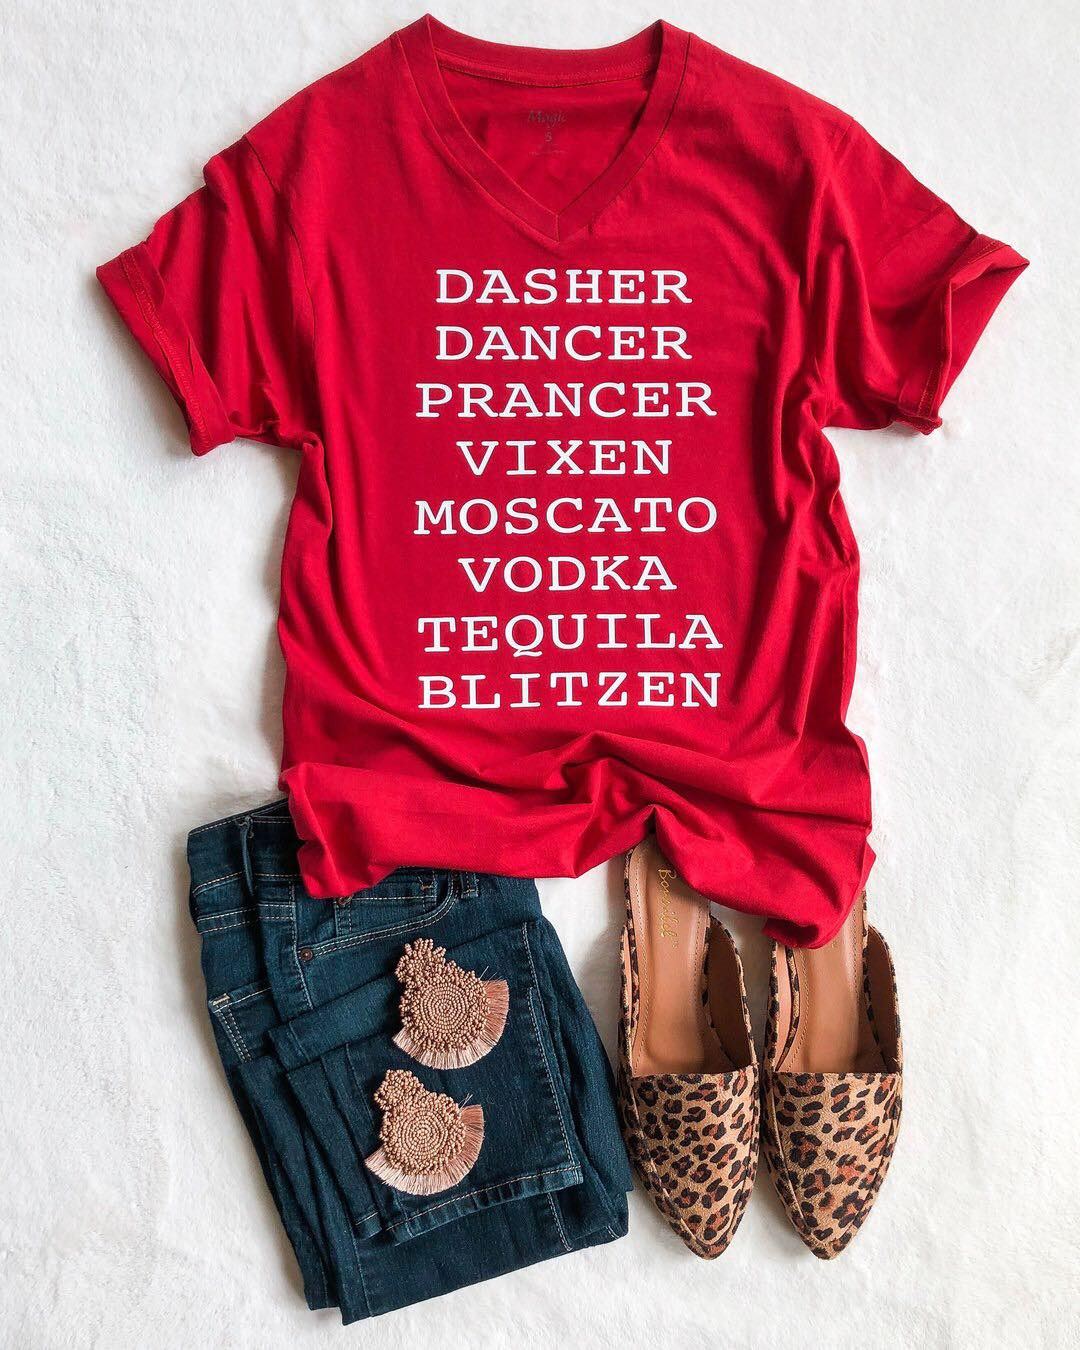 Dasher Dance Prancer Vixen Moscato Vodka Tequila Blitzen Shirt